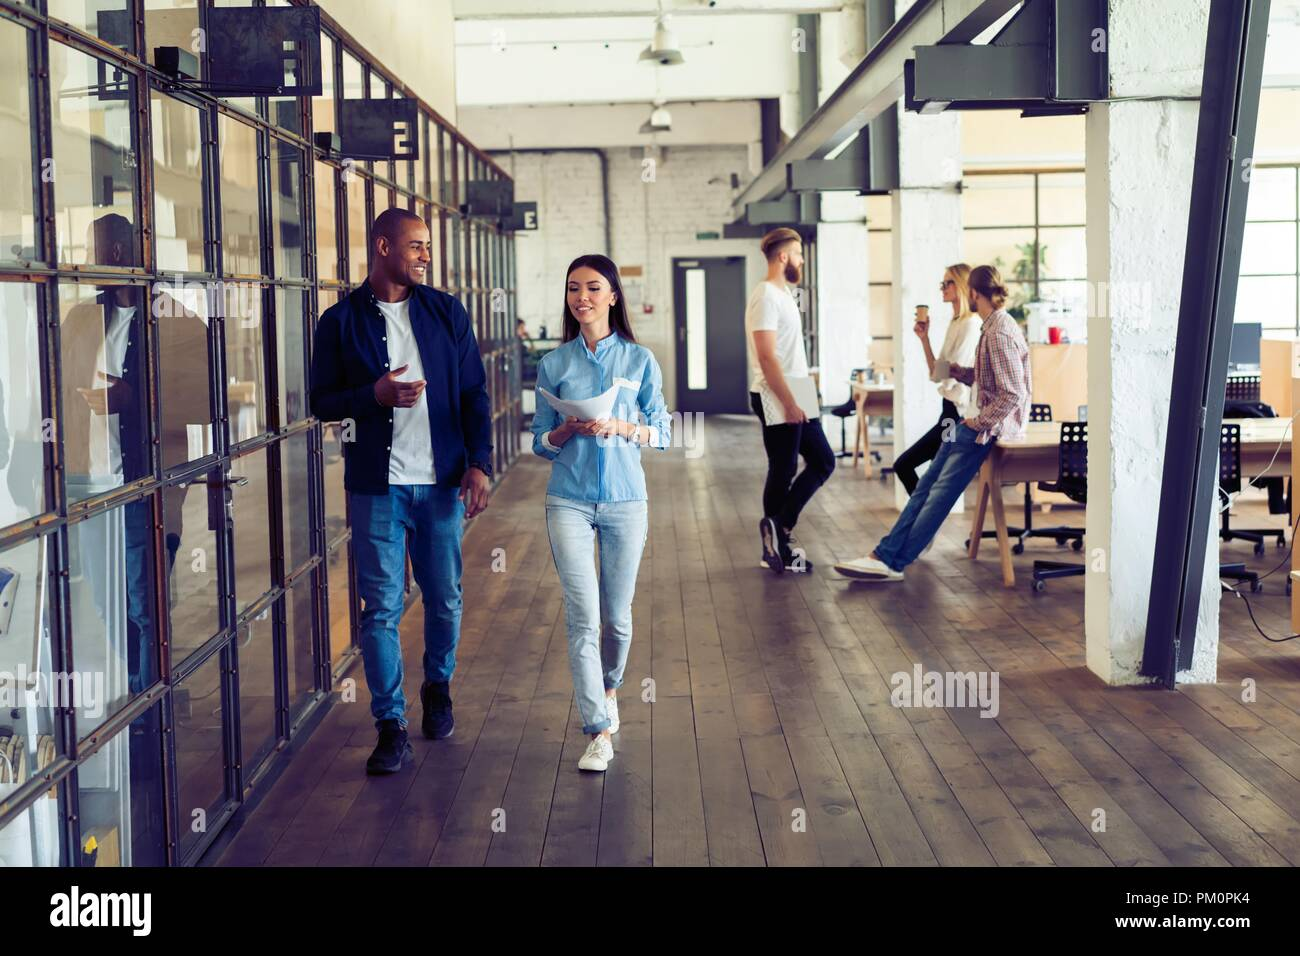 Catching up before meeting. Full length of young modern people in smart casual wear discussing business and smiling while walking through the office corridor. - Stock Image